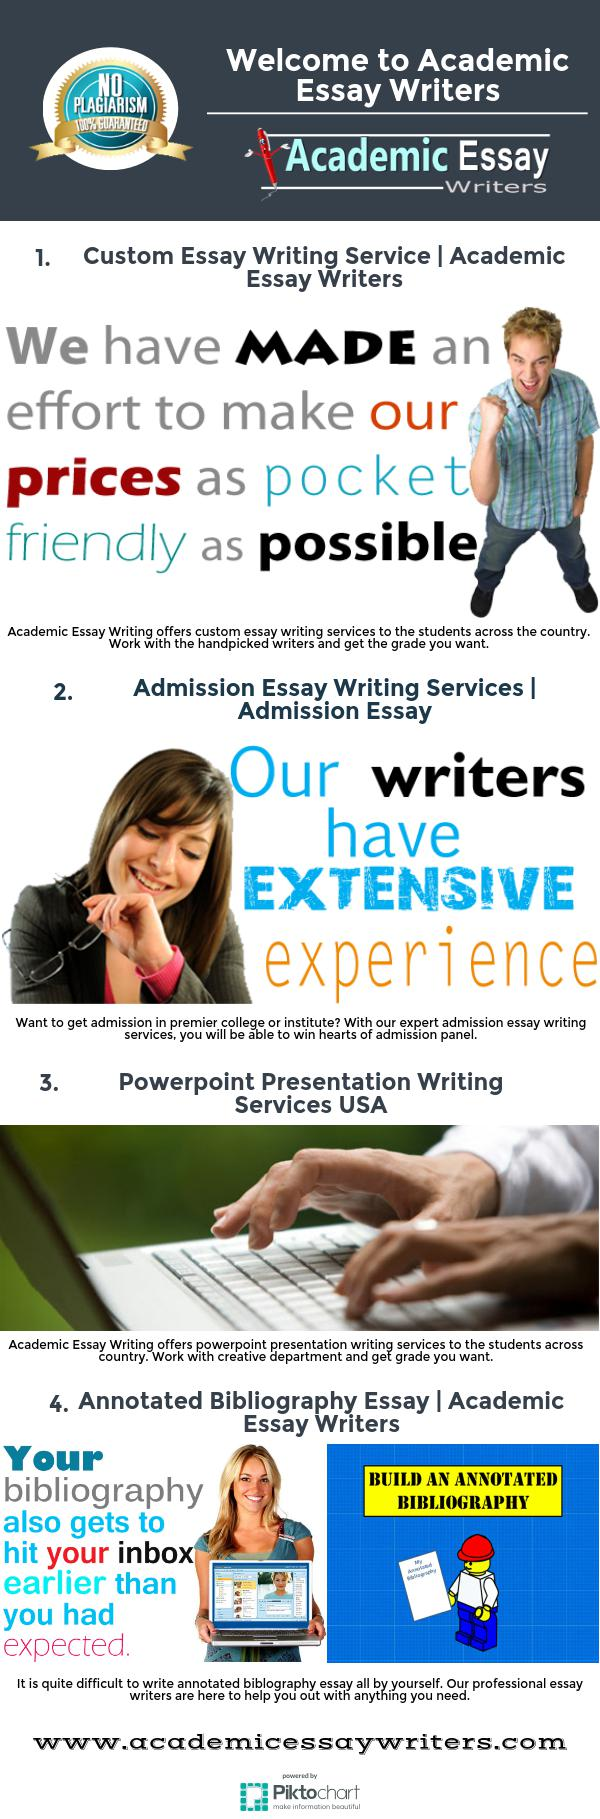 professional essay writing services Essay writer offers you a wide range of academic writing services we have only pro writers in our team high quality guaranteed.